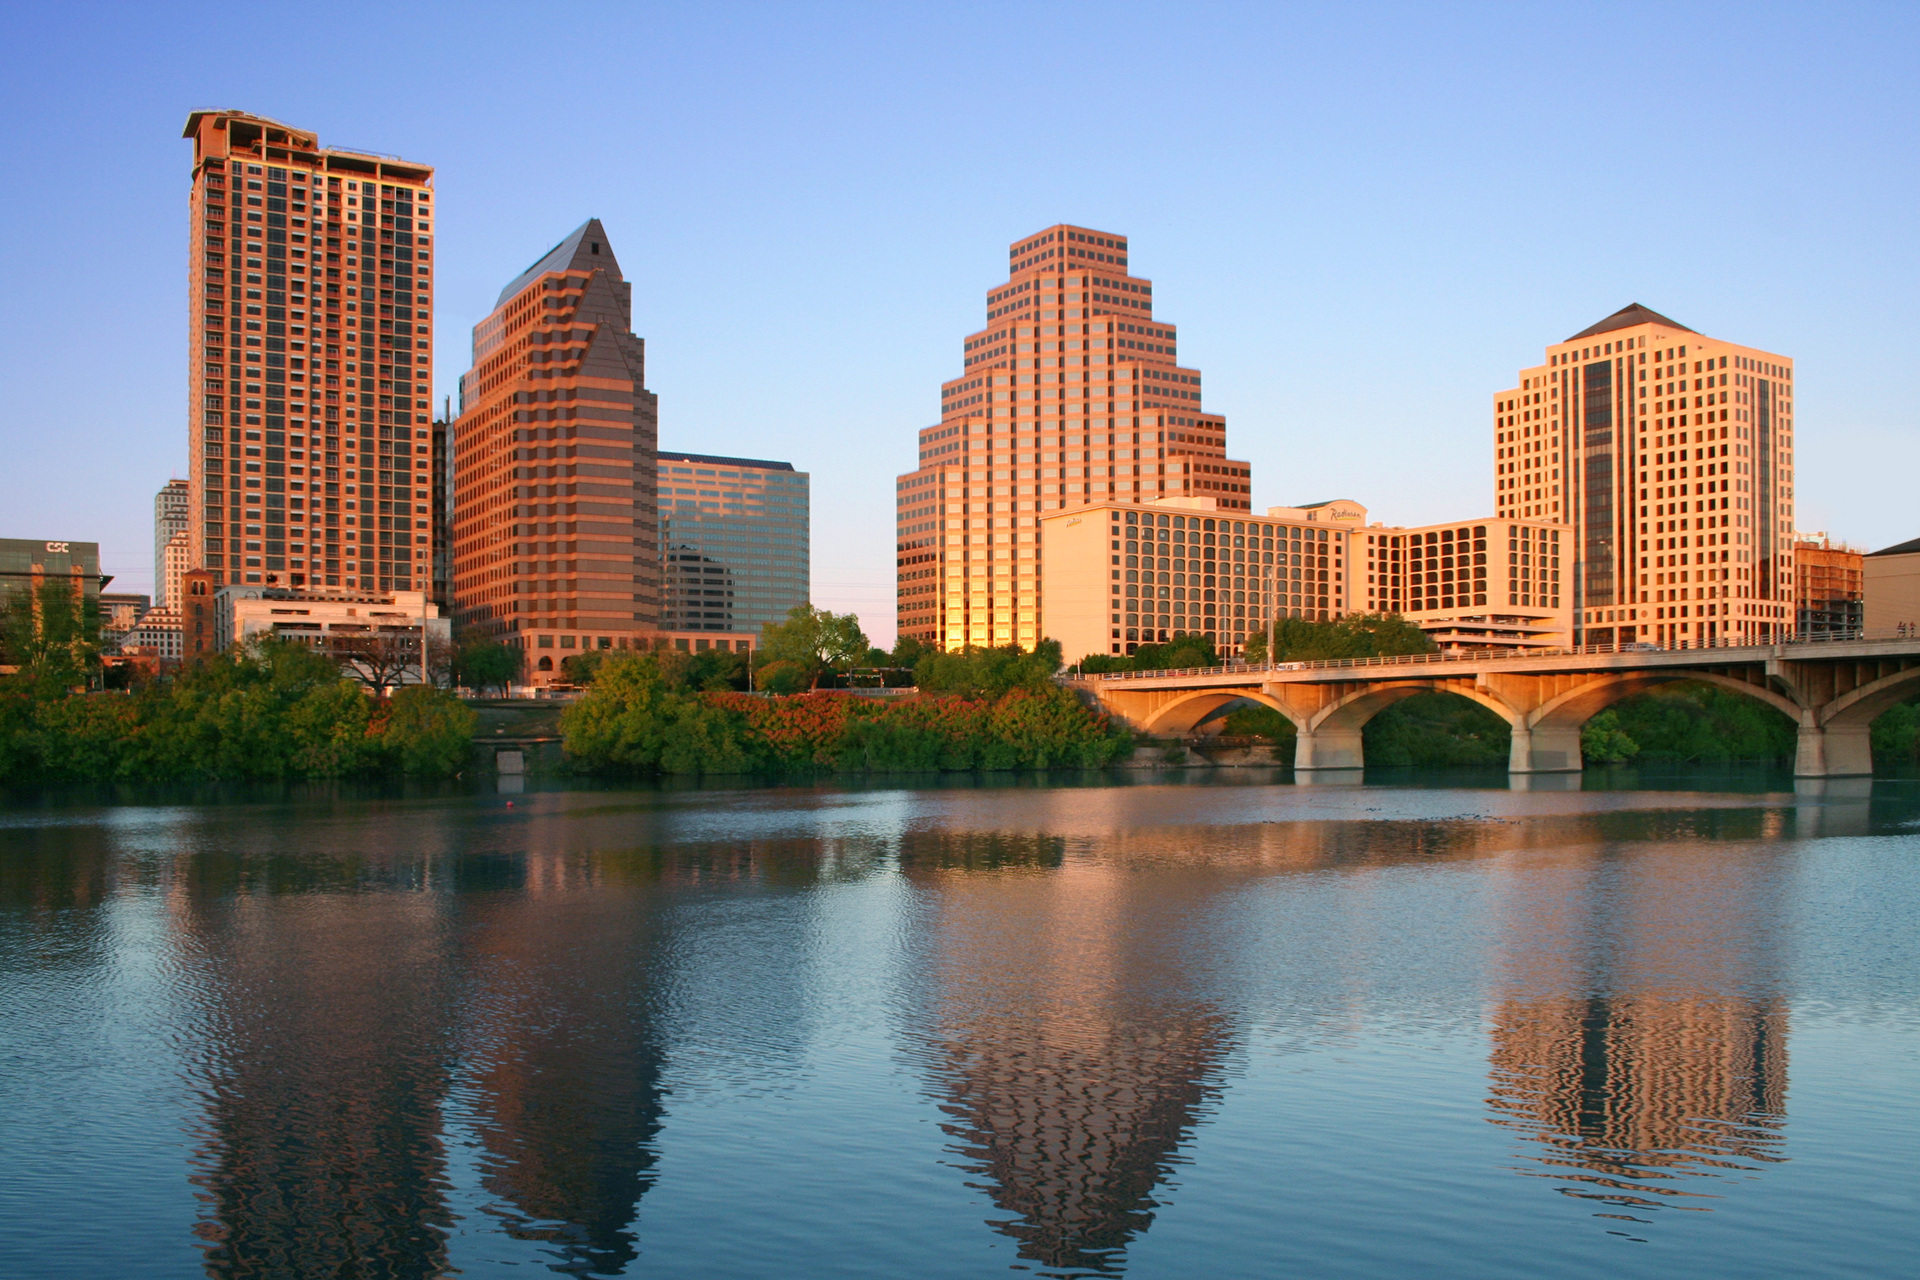 austin-texas-lady-bird-lake-town-lake-1208479-1920x1280